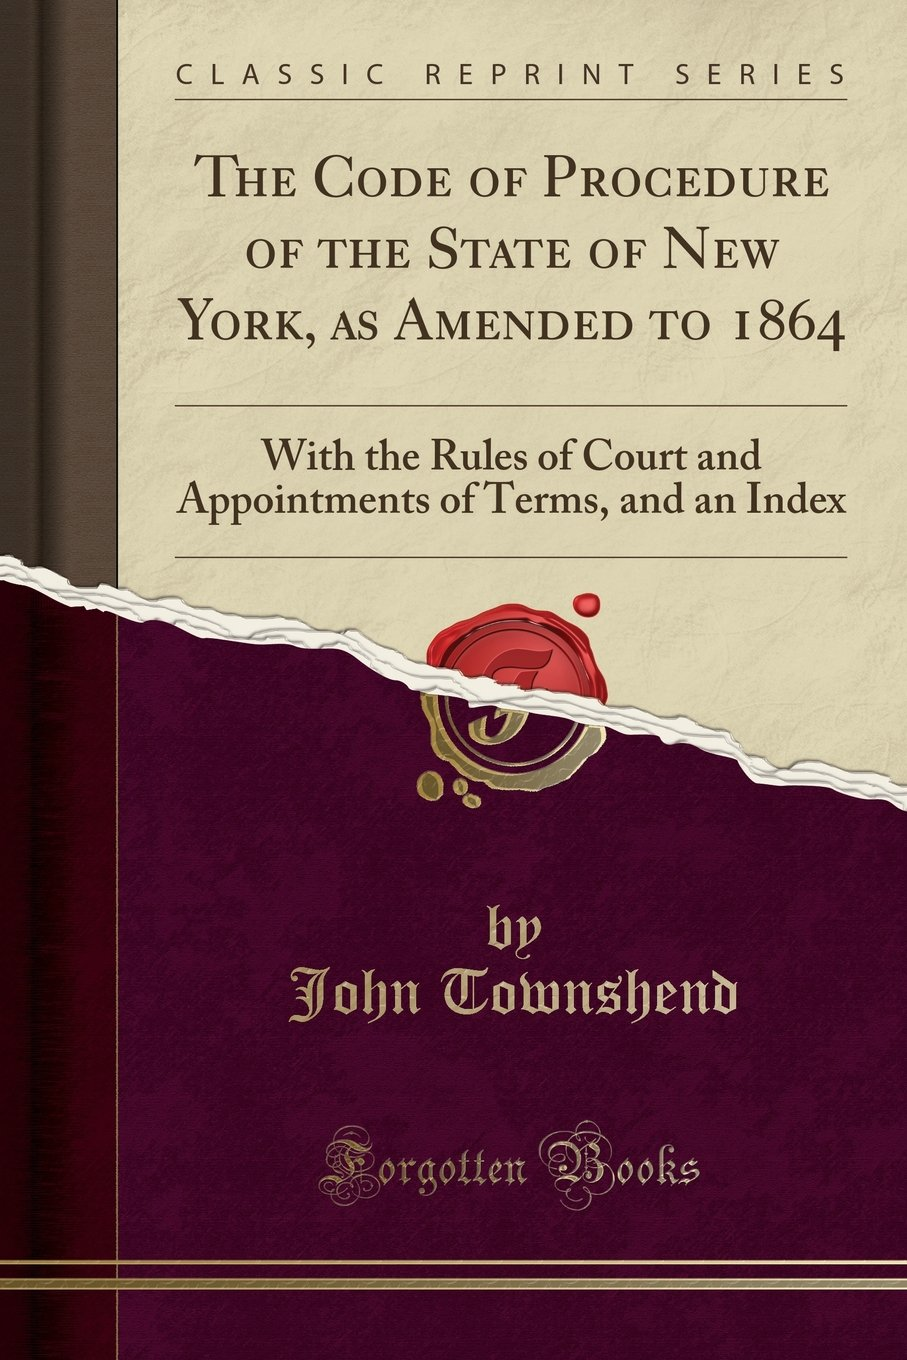 Download The Code of Procedure of the State of New York, as Amended to 1864: With the Rules of Court and Appointments of Terms, and an Index (Classic Reprint) ebook